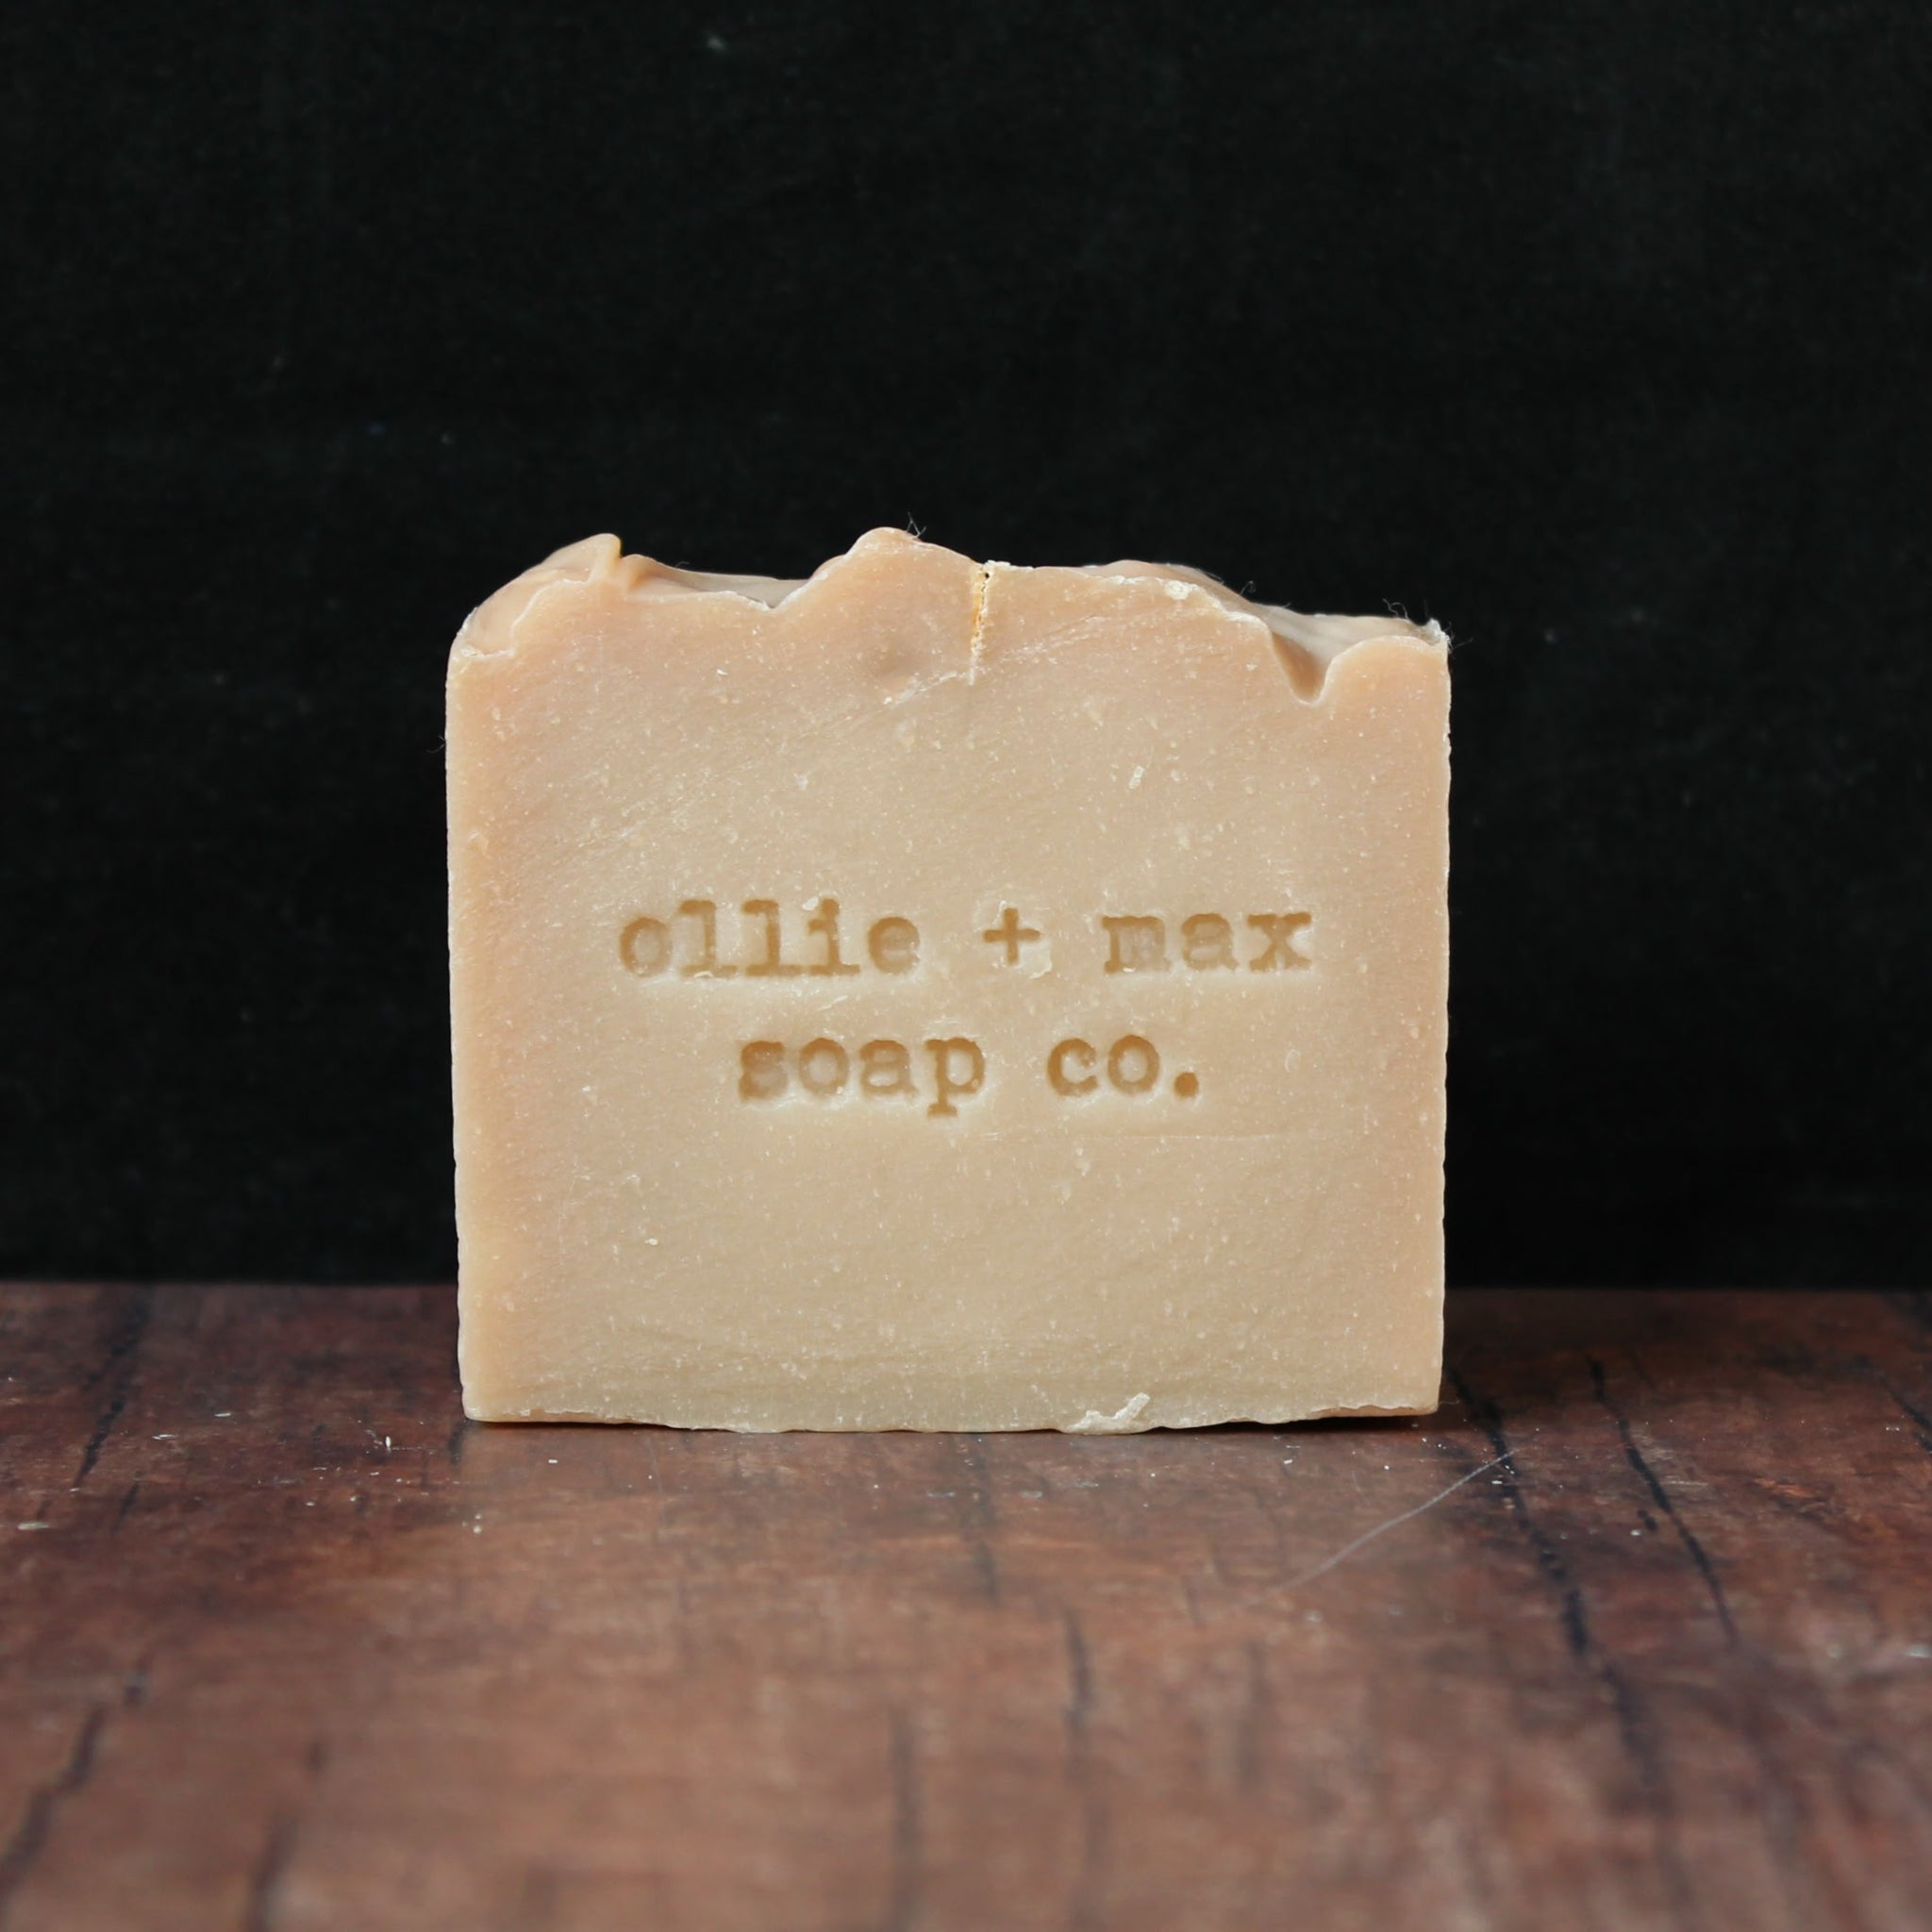 Pineapple mint vegan cruelty free handmade soap